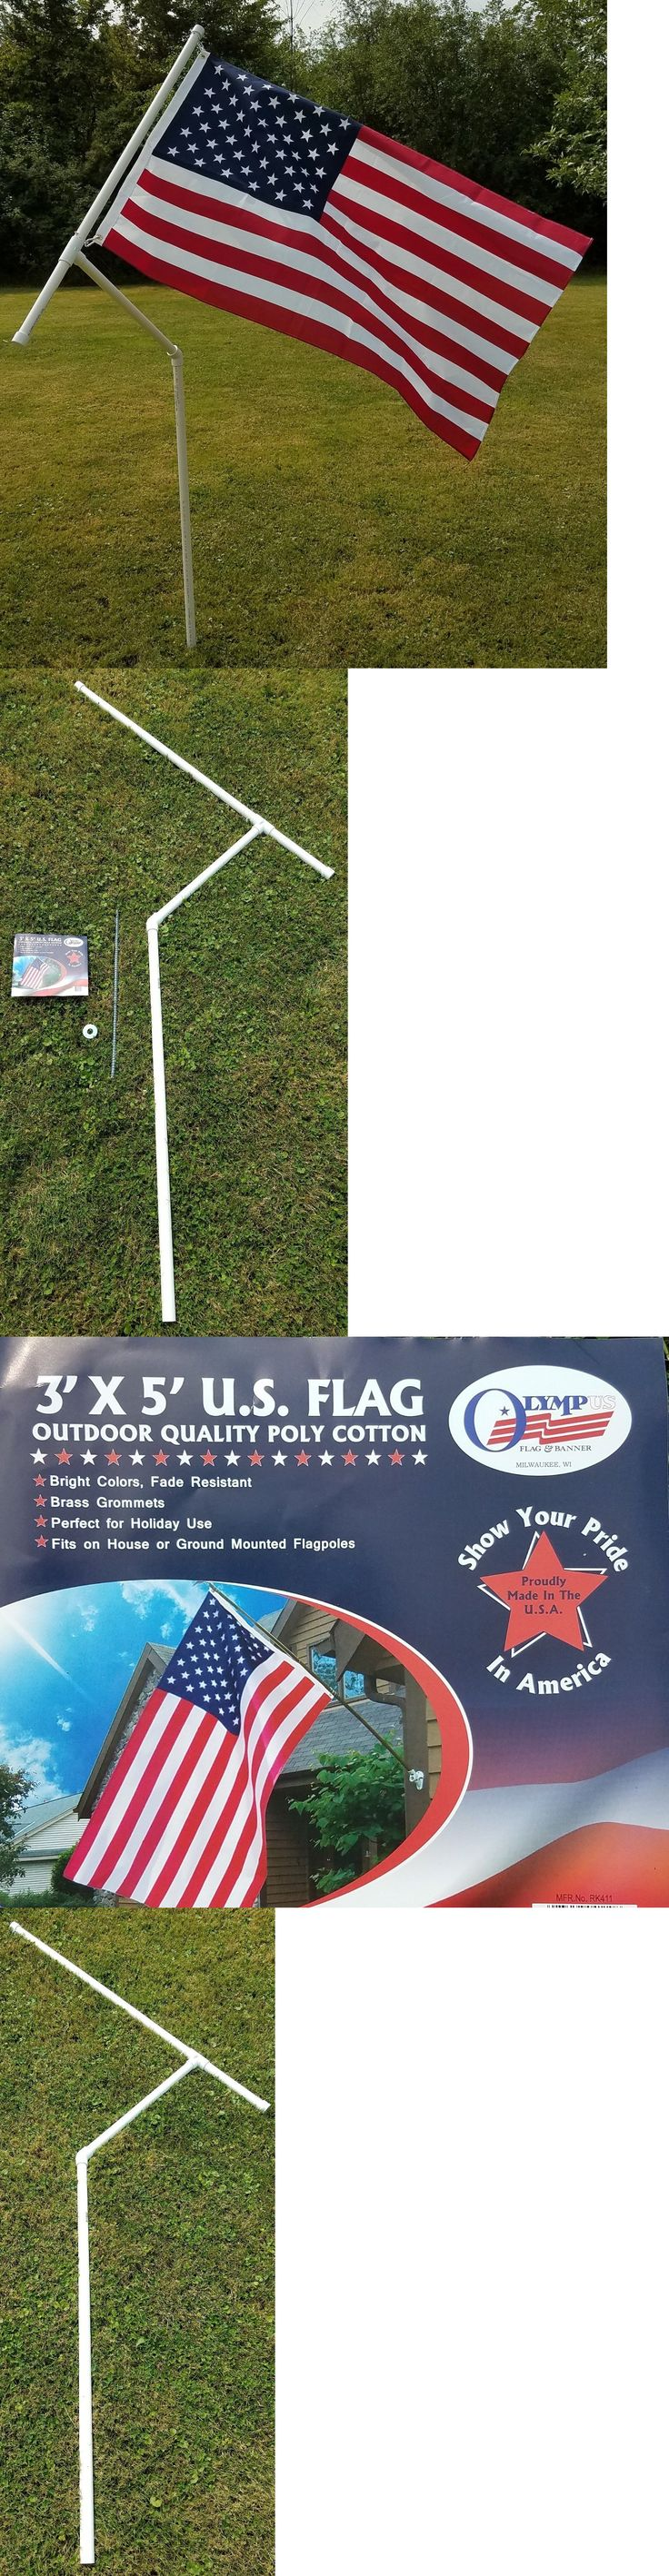 Flag Poles and Parts 43536: Rotating 1 Pvc Flag Pole With U.S. Flag - Camping, Rving, Tailgating, Sports -> BUY IT NOW ONLY: $35 on eBay!